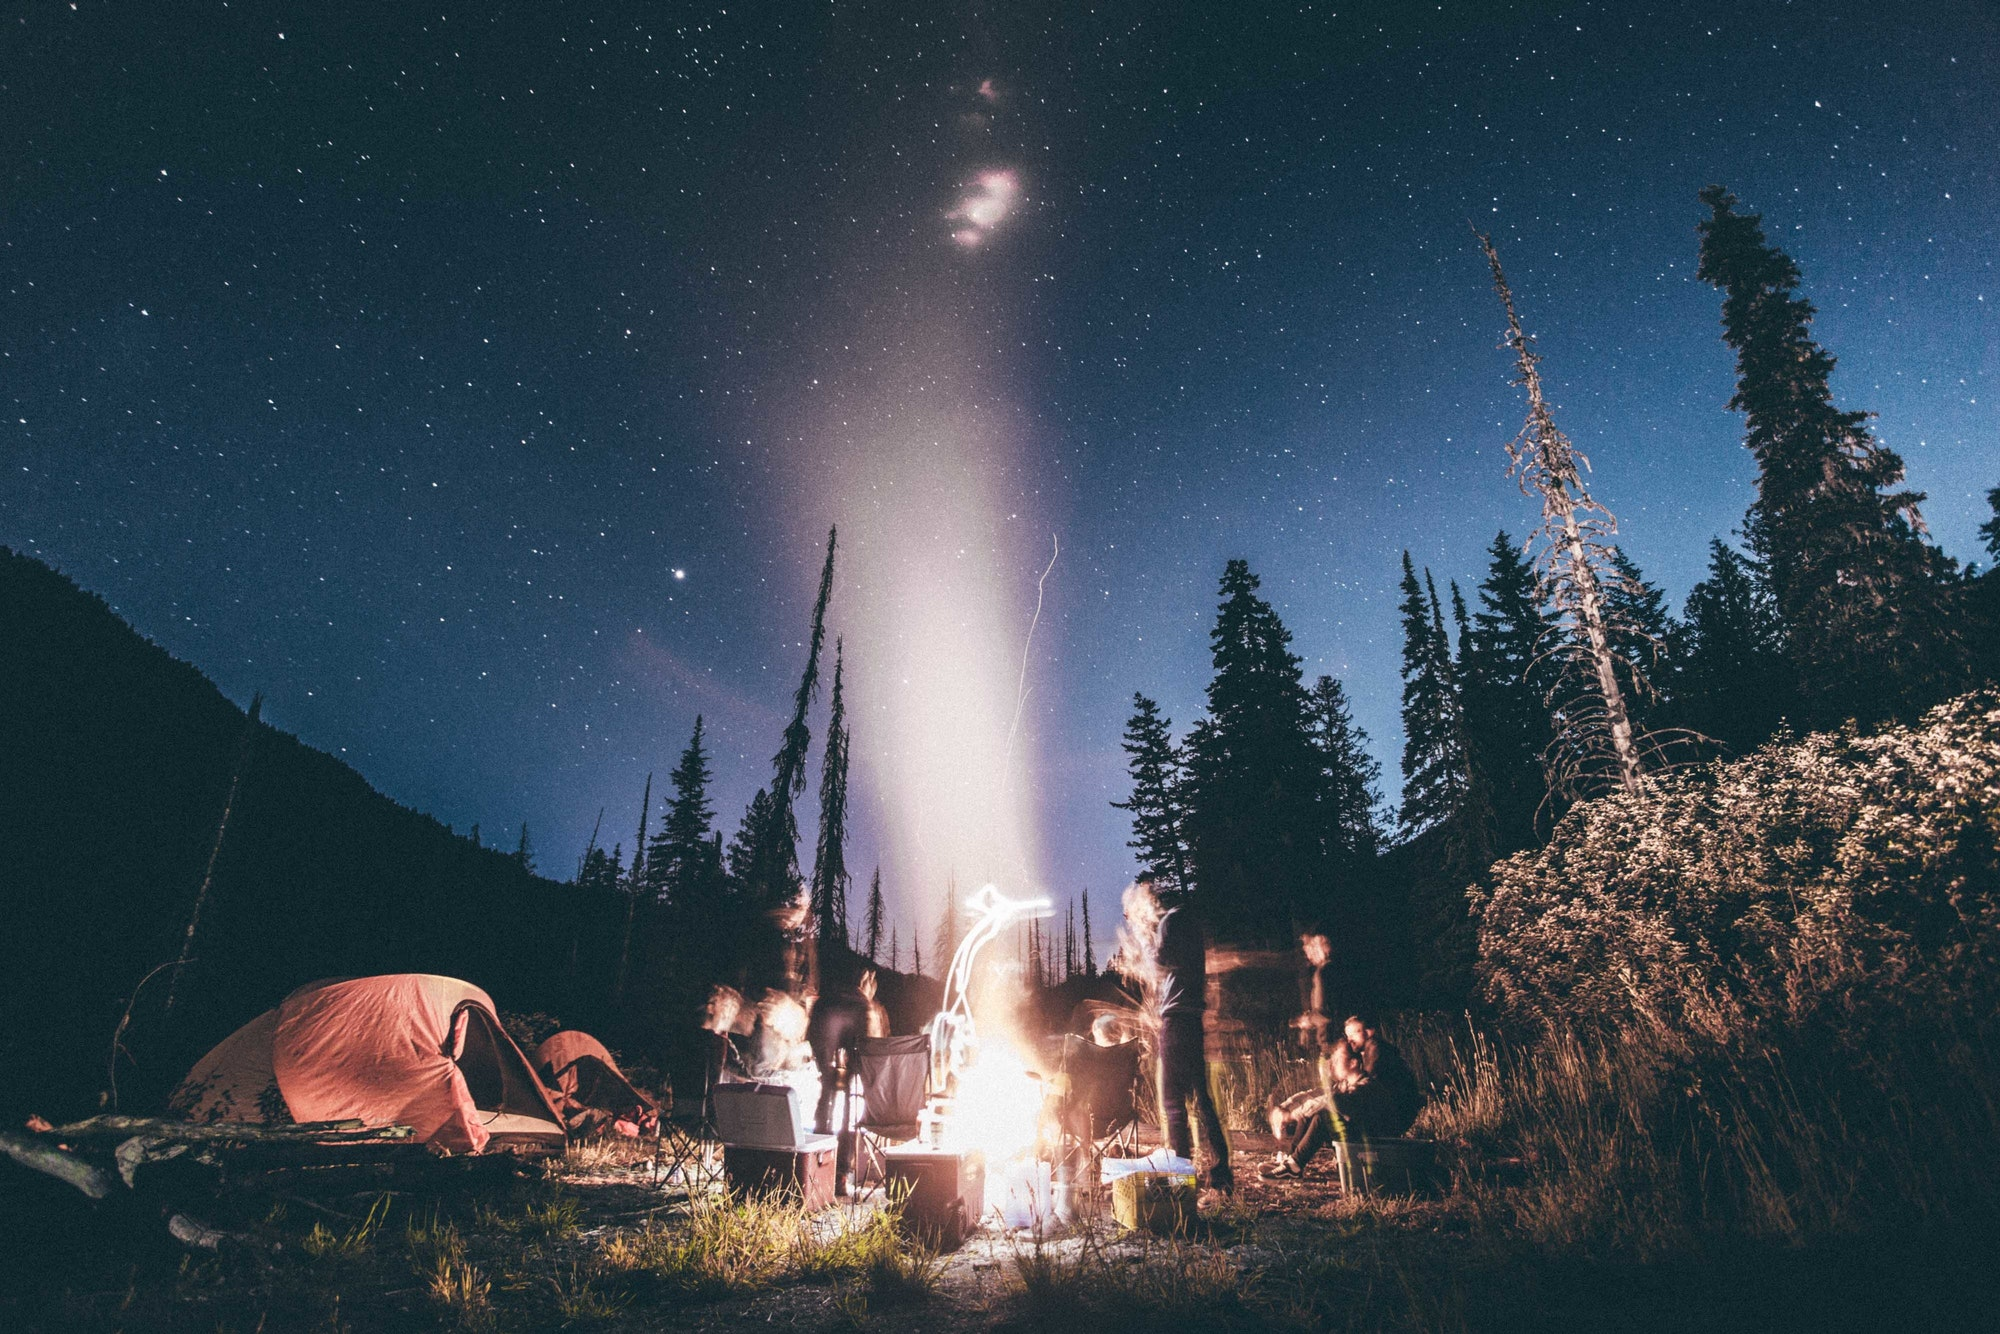 Camp fire under the stars